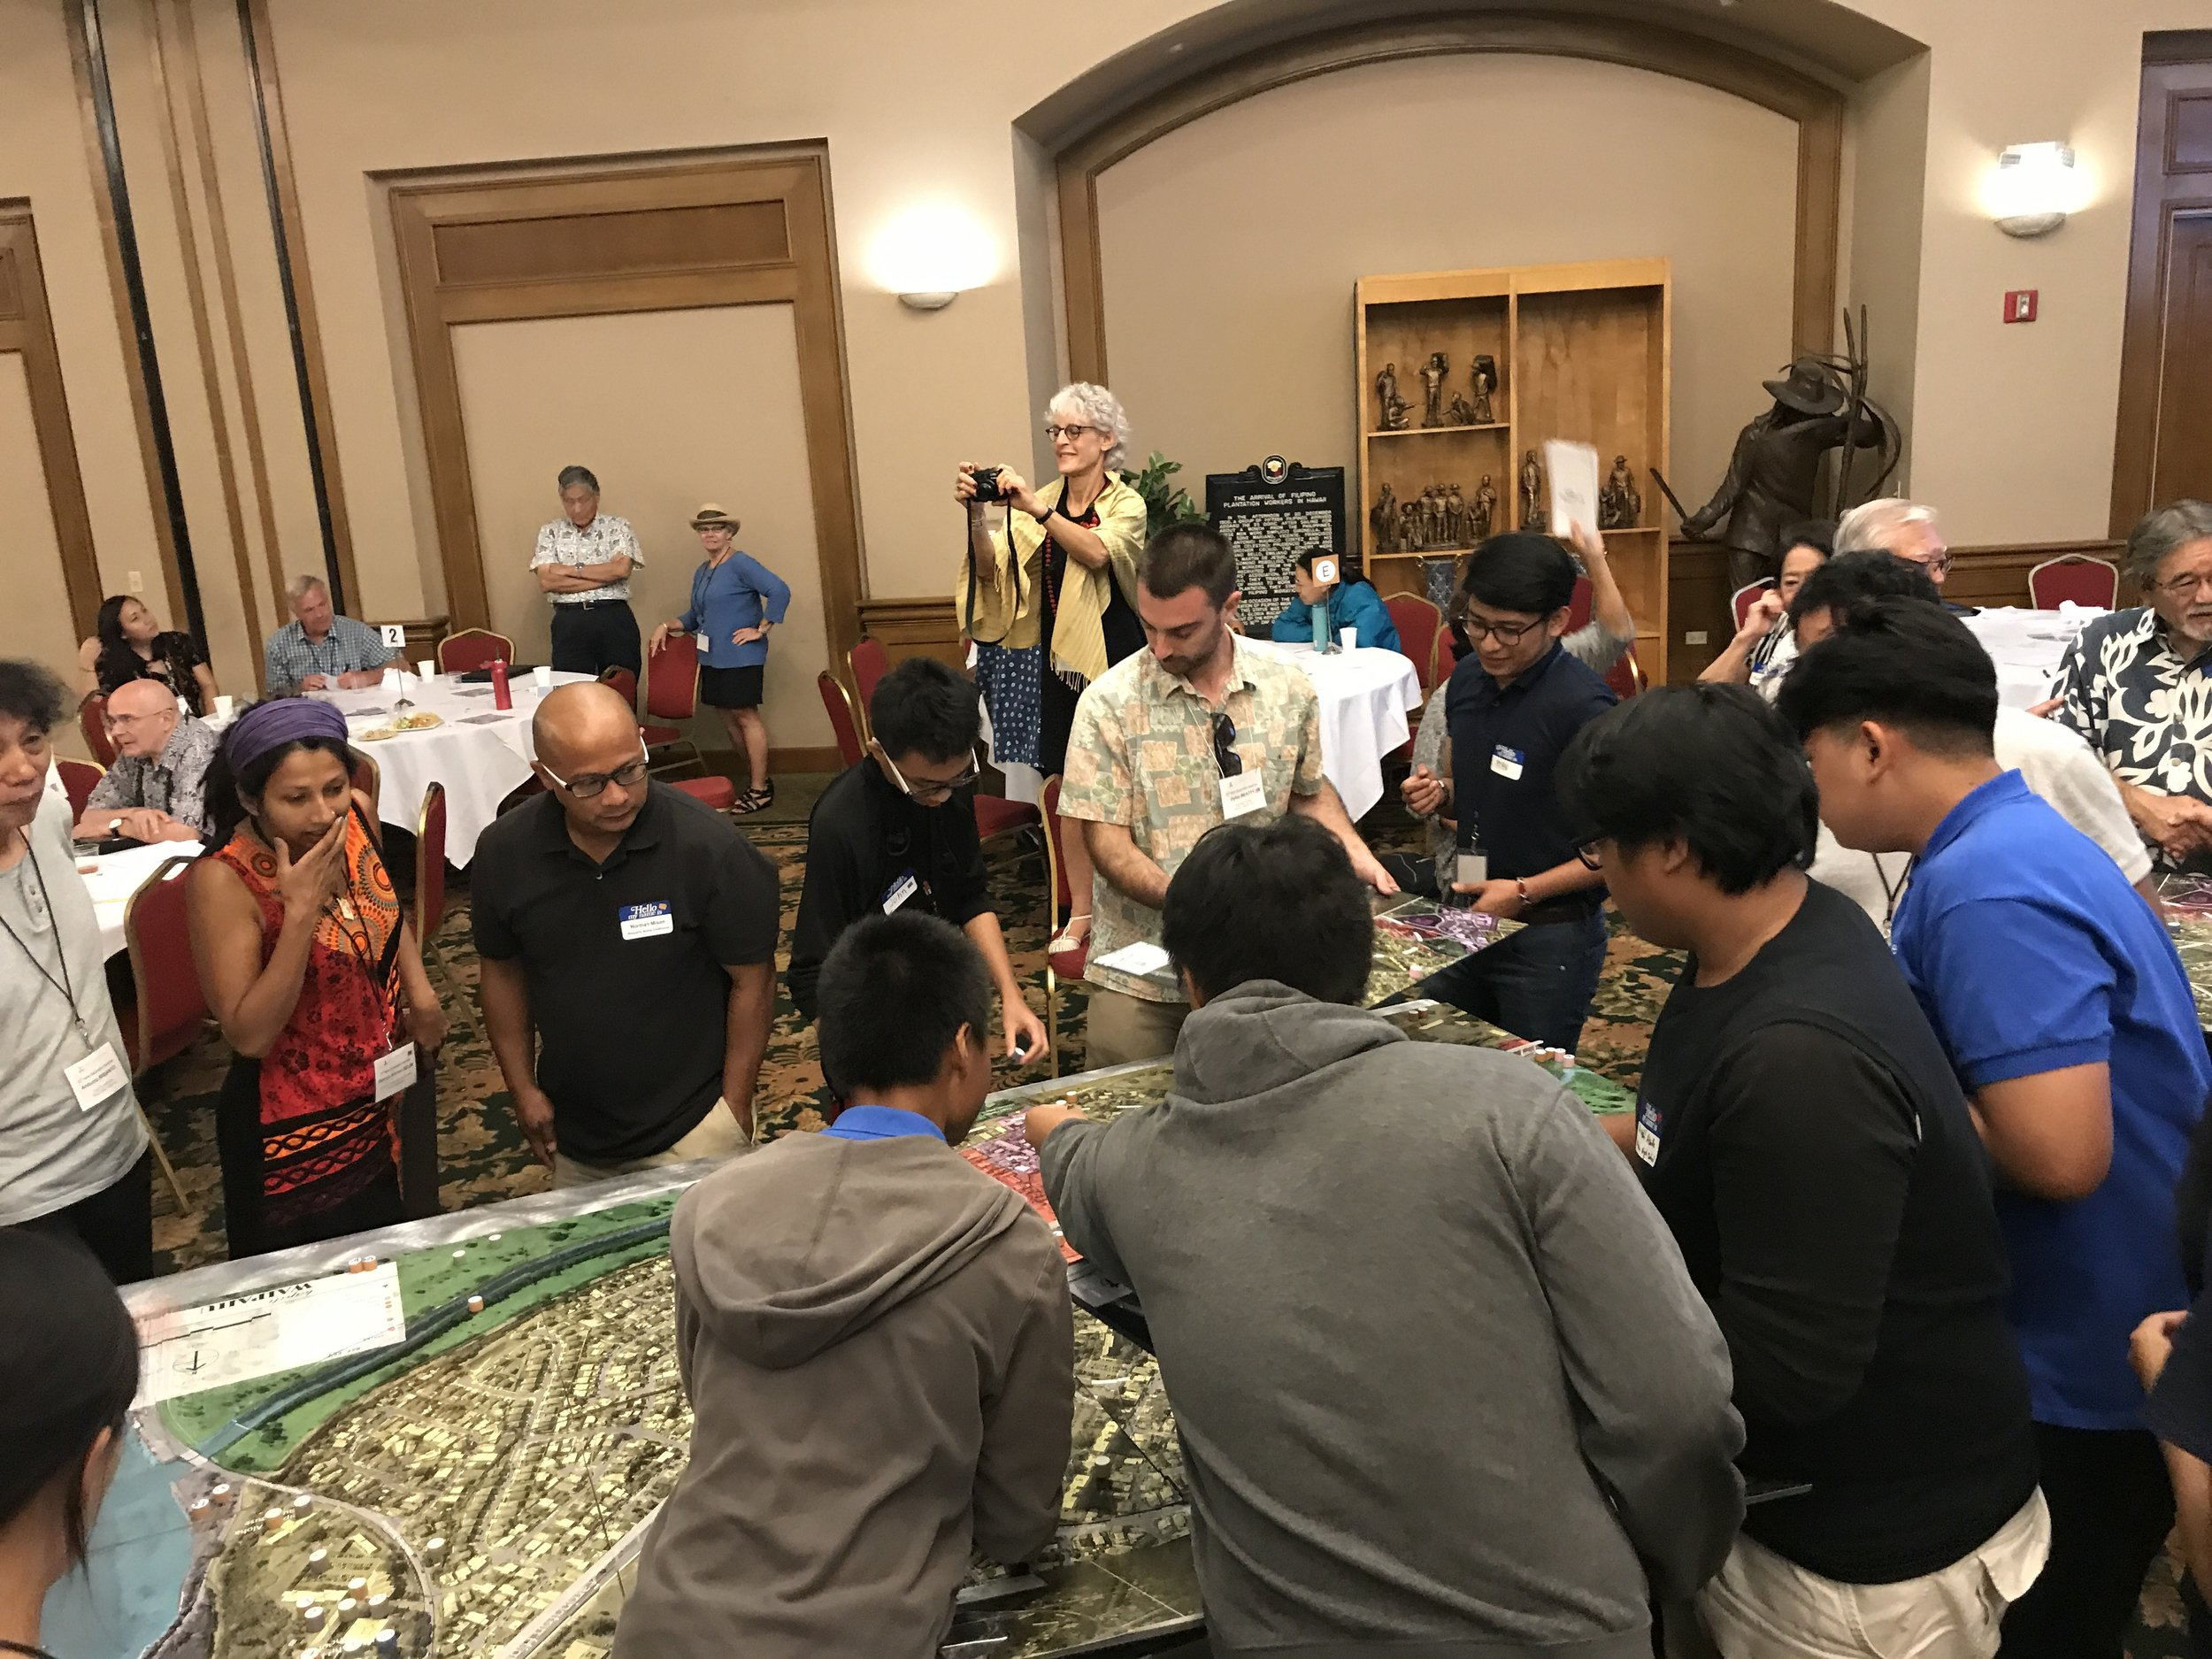 Workshop attendees gathering around Waipahu Town model